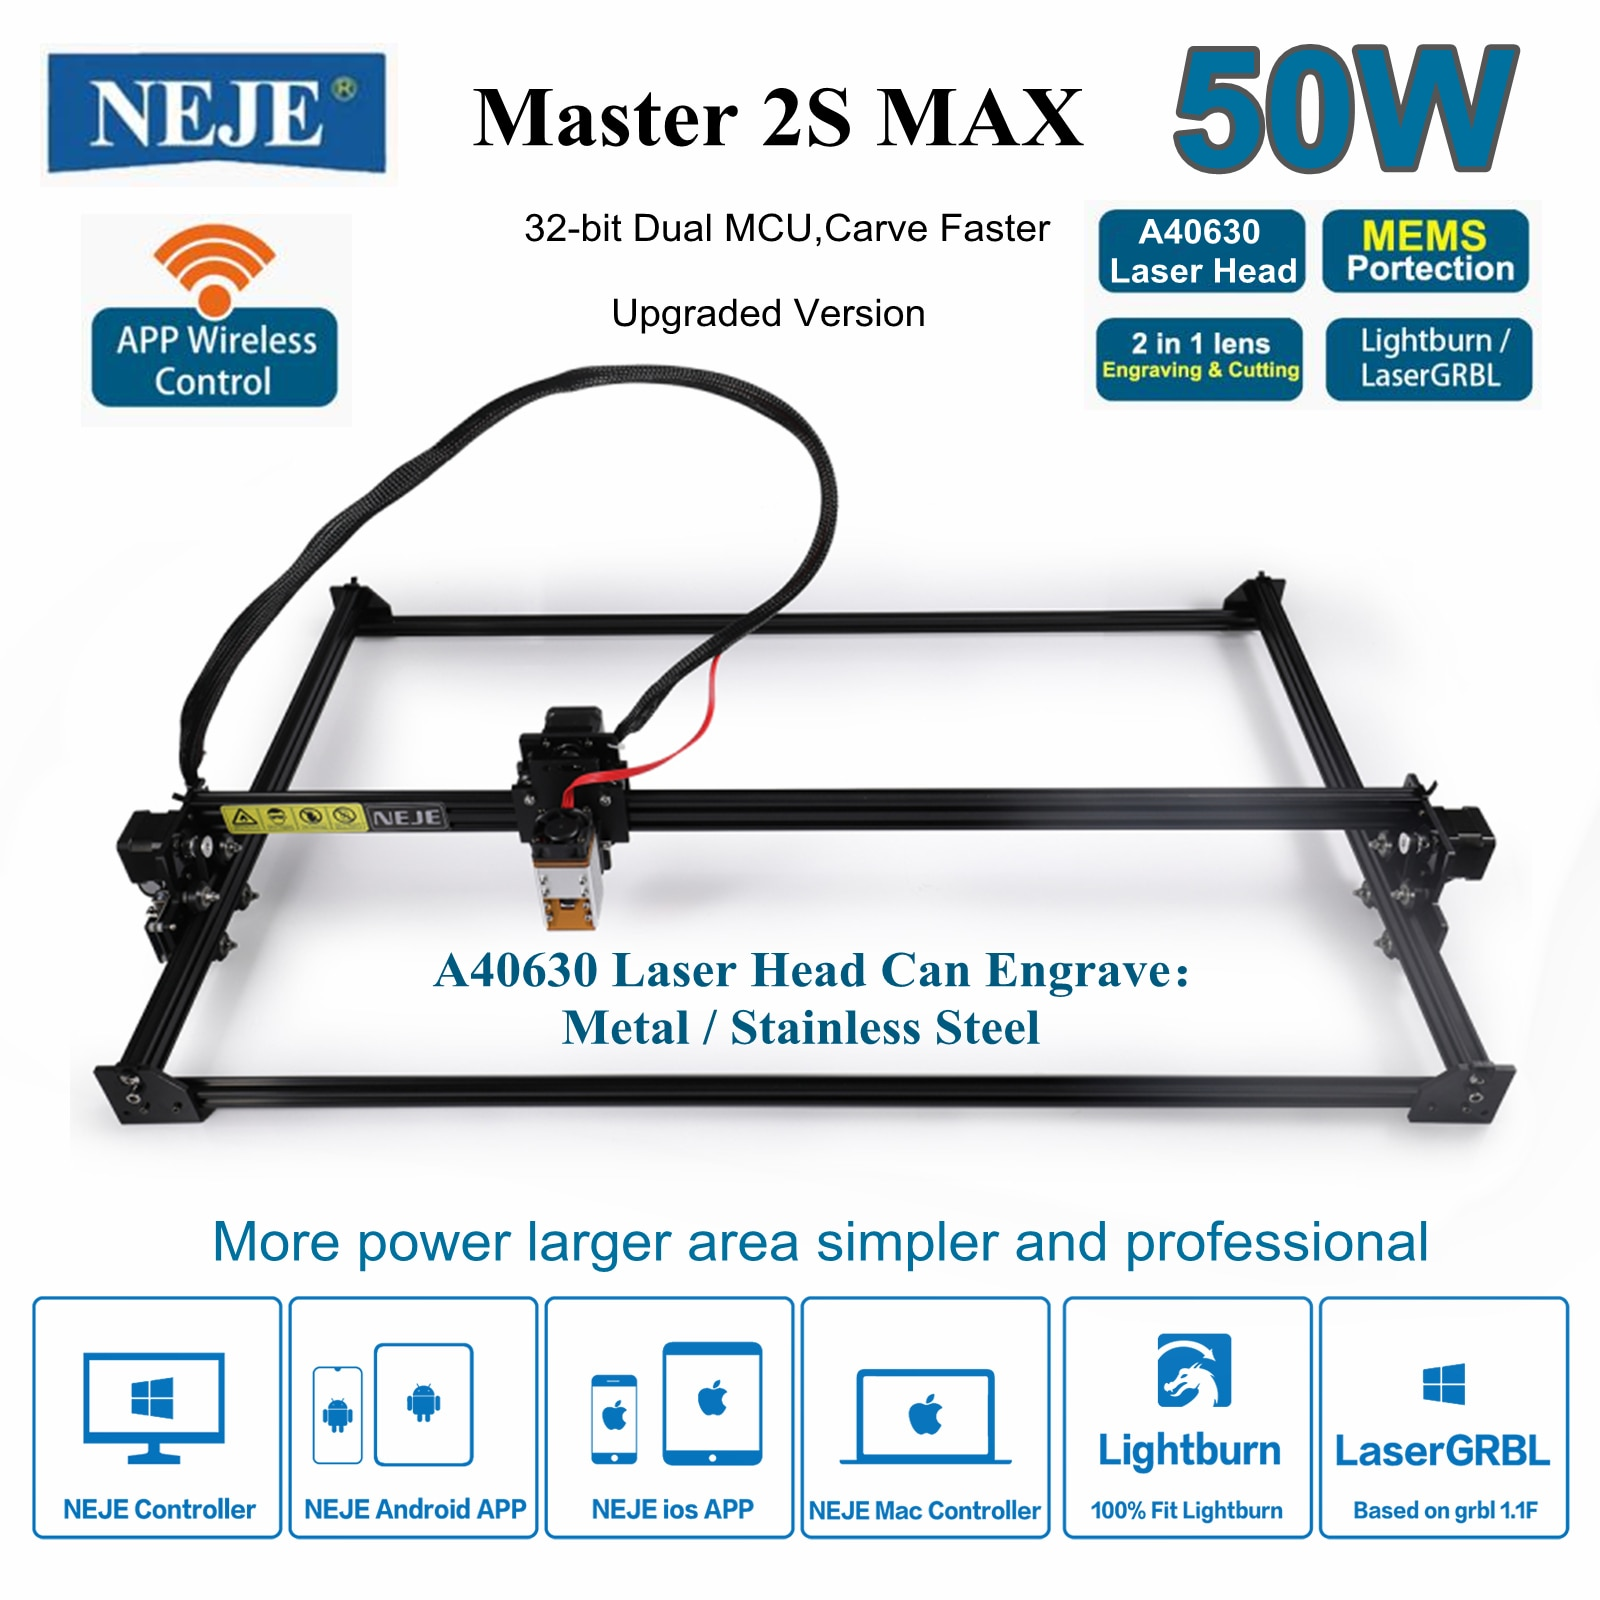 New NEJE Master 2S Max 50W A40630 Profession CNC Laser Engraving Machine Laser Cutter Engrave Metal with App Control Lightburn